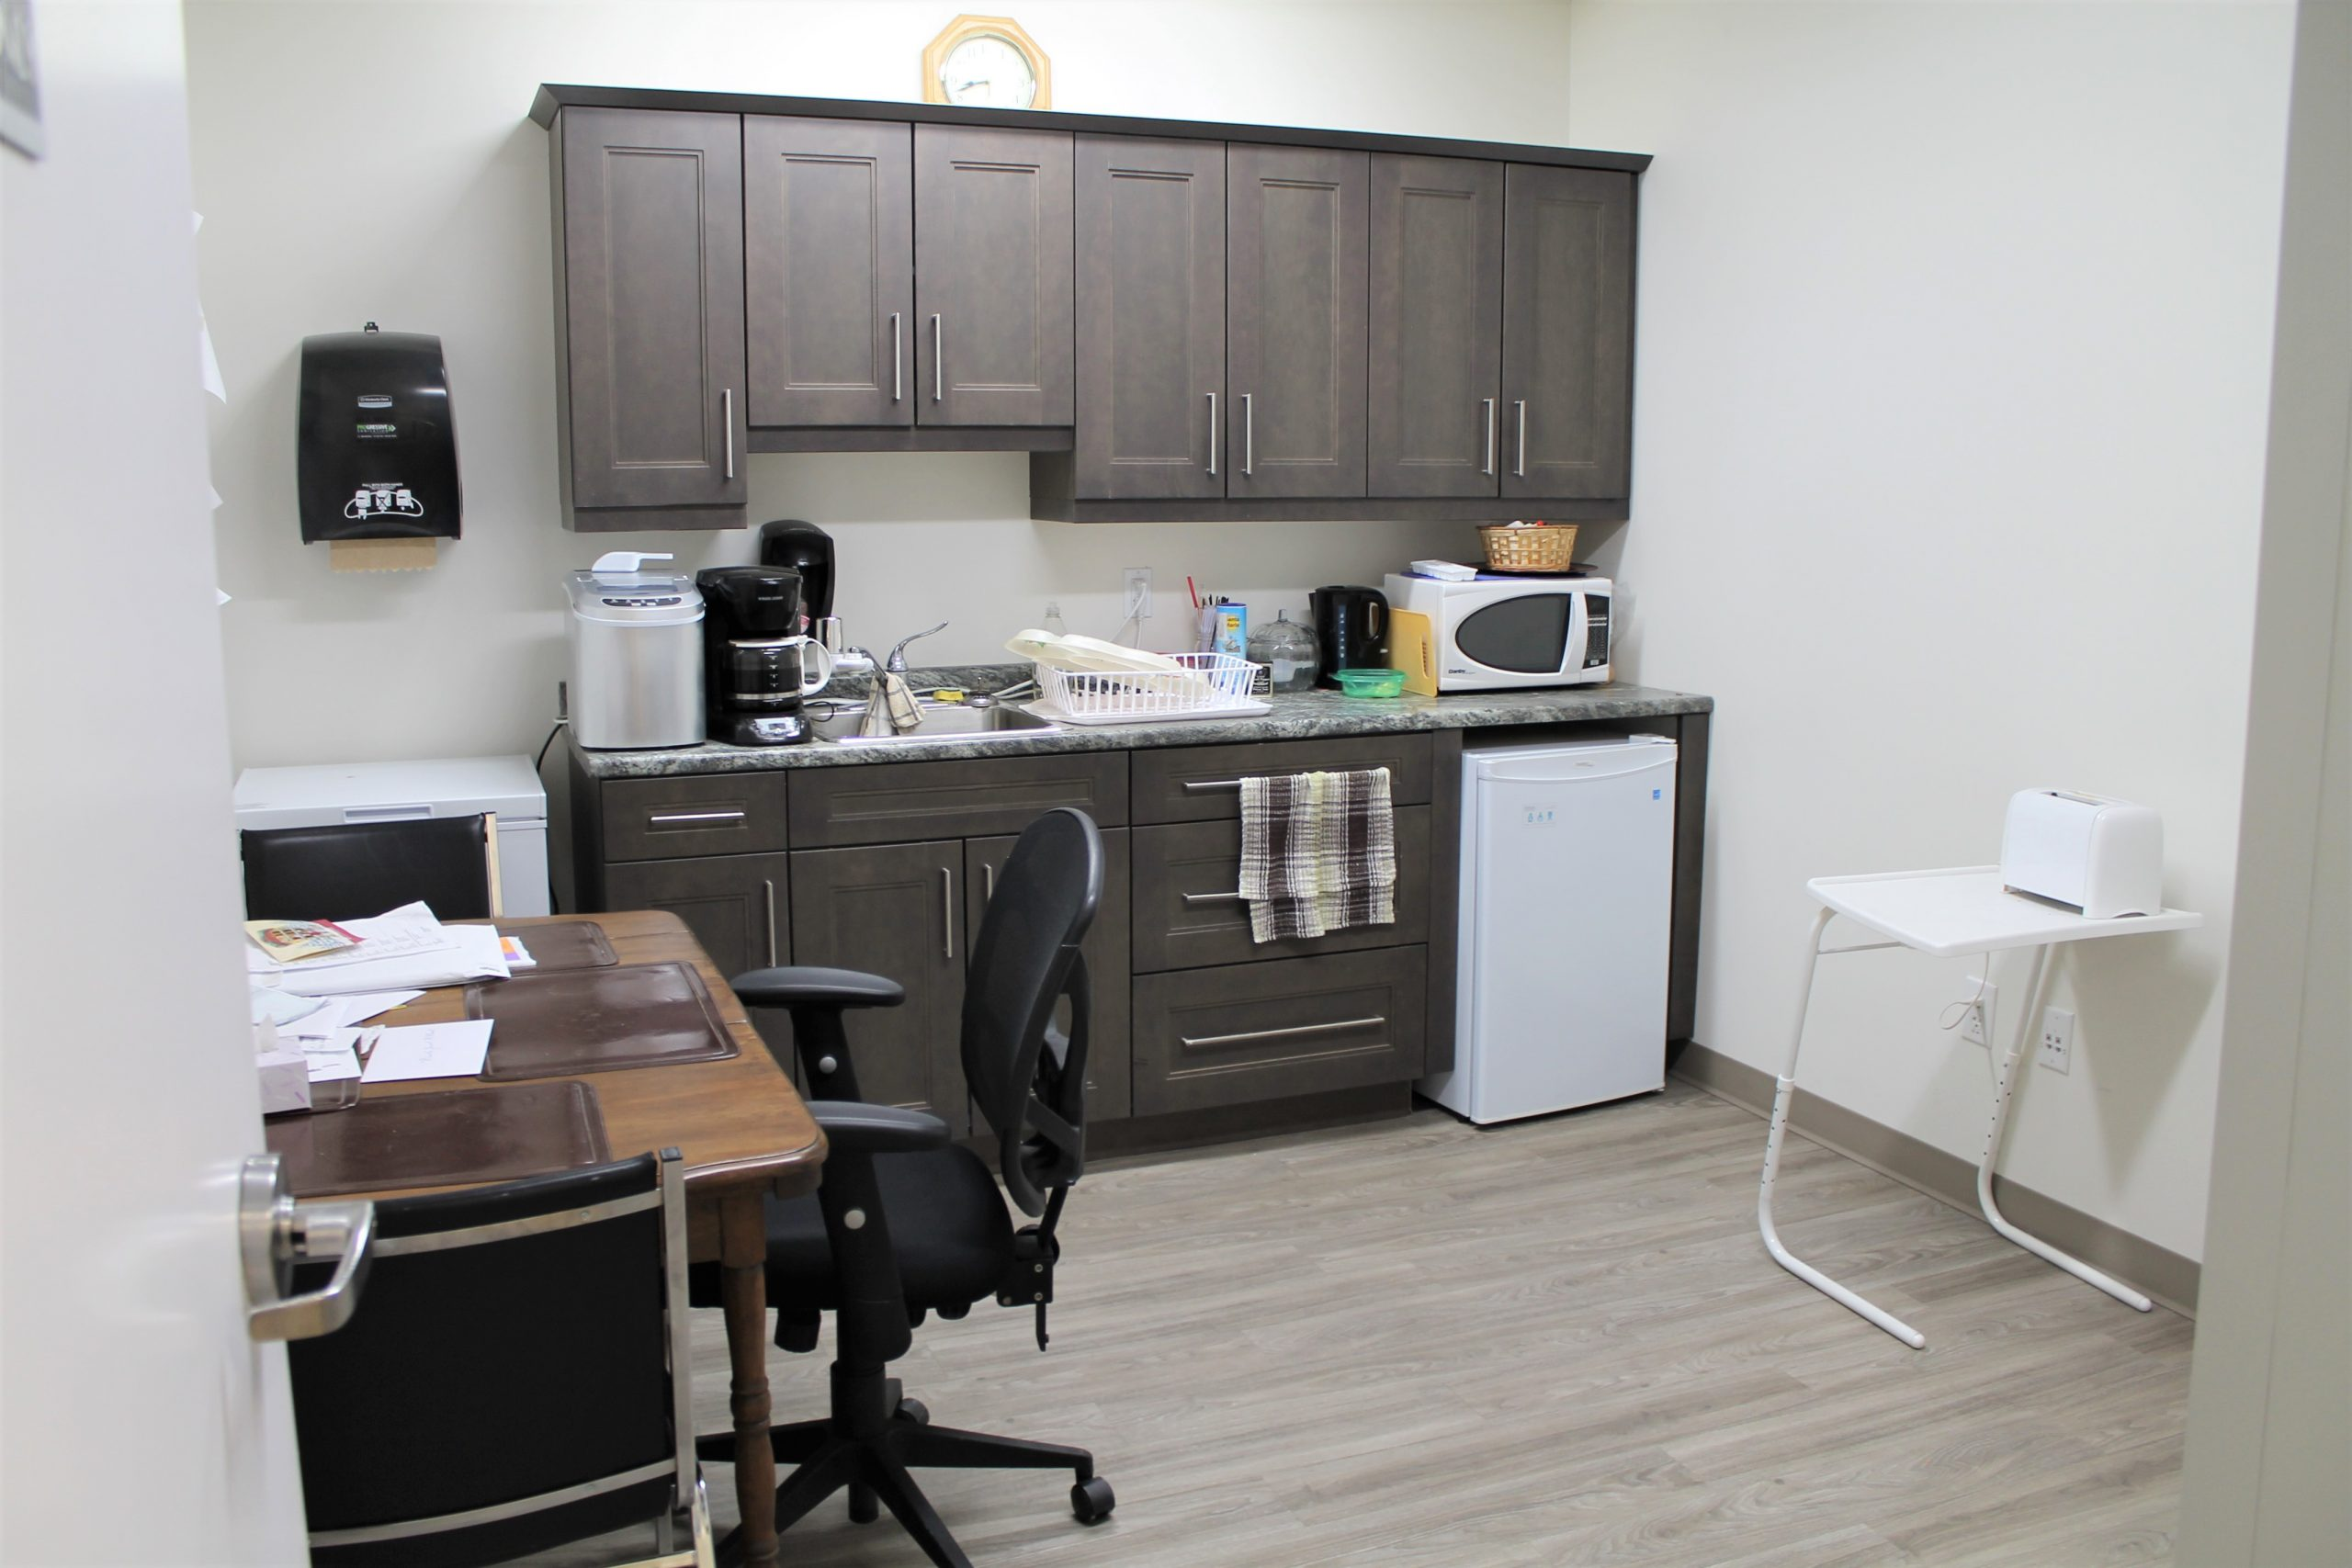 Staff room and kitchenette